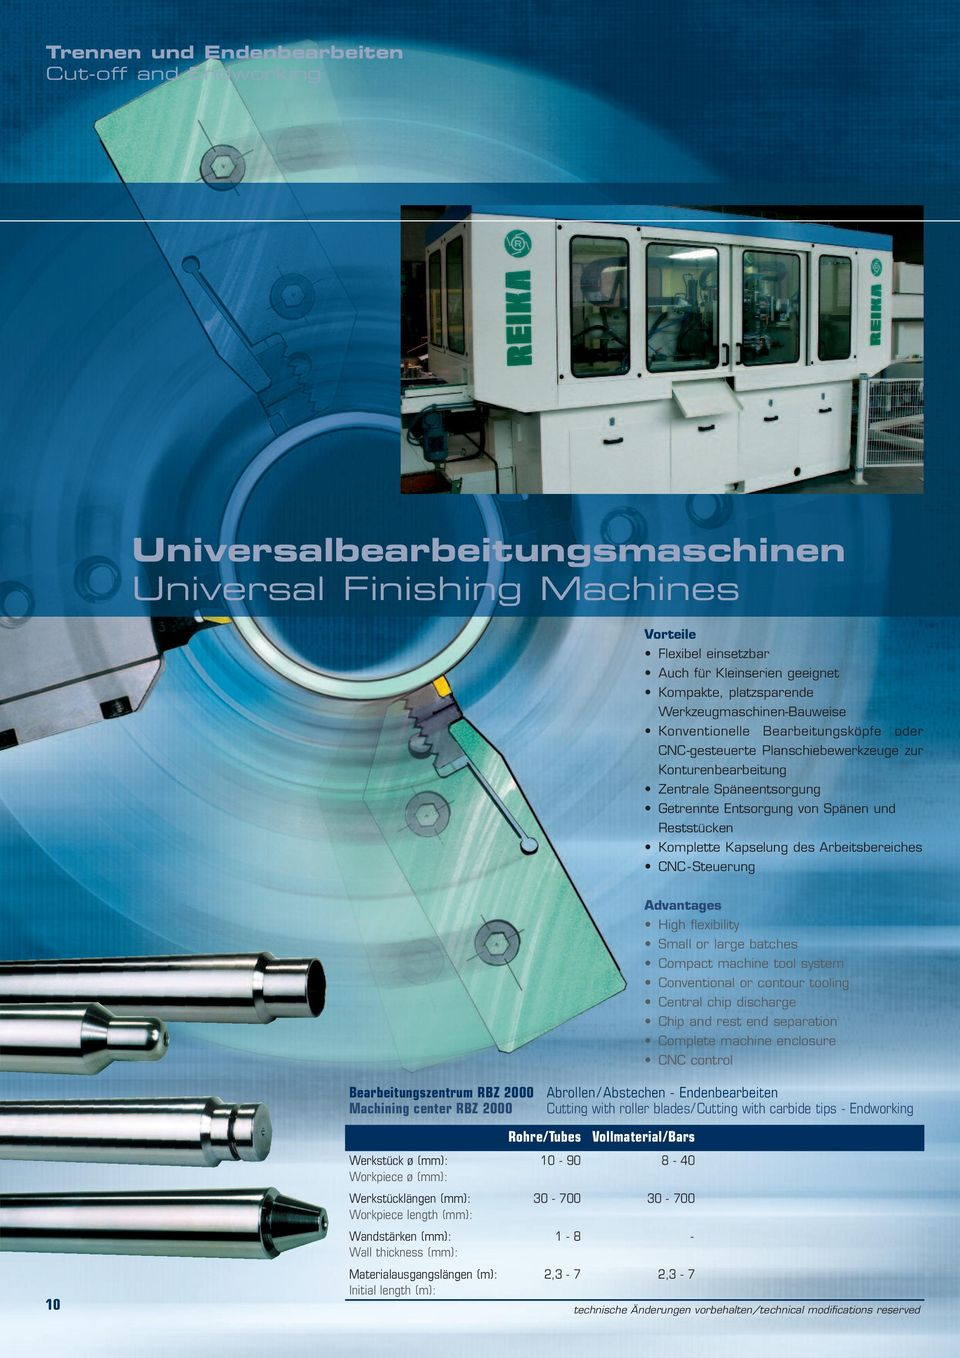 Komplette Kapselung des Arbeitsbereiches CNC - Steuerung Advantages High flexibility Small or large batches Compact machine tool system Conventional or contour tooling Central chip discharge Chip and